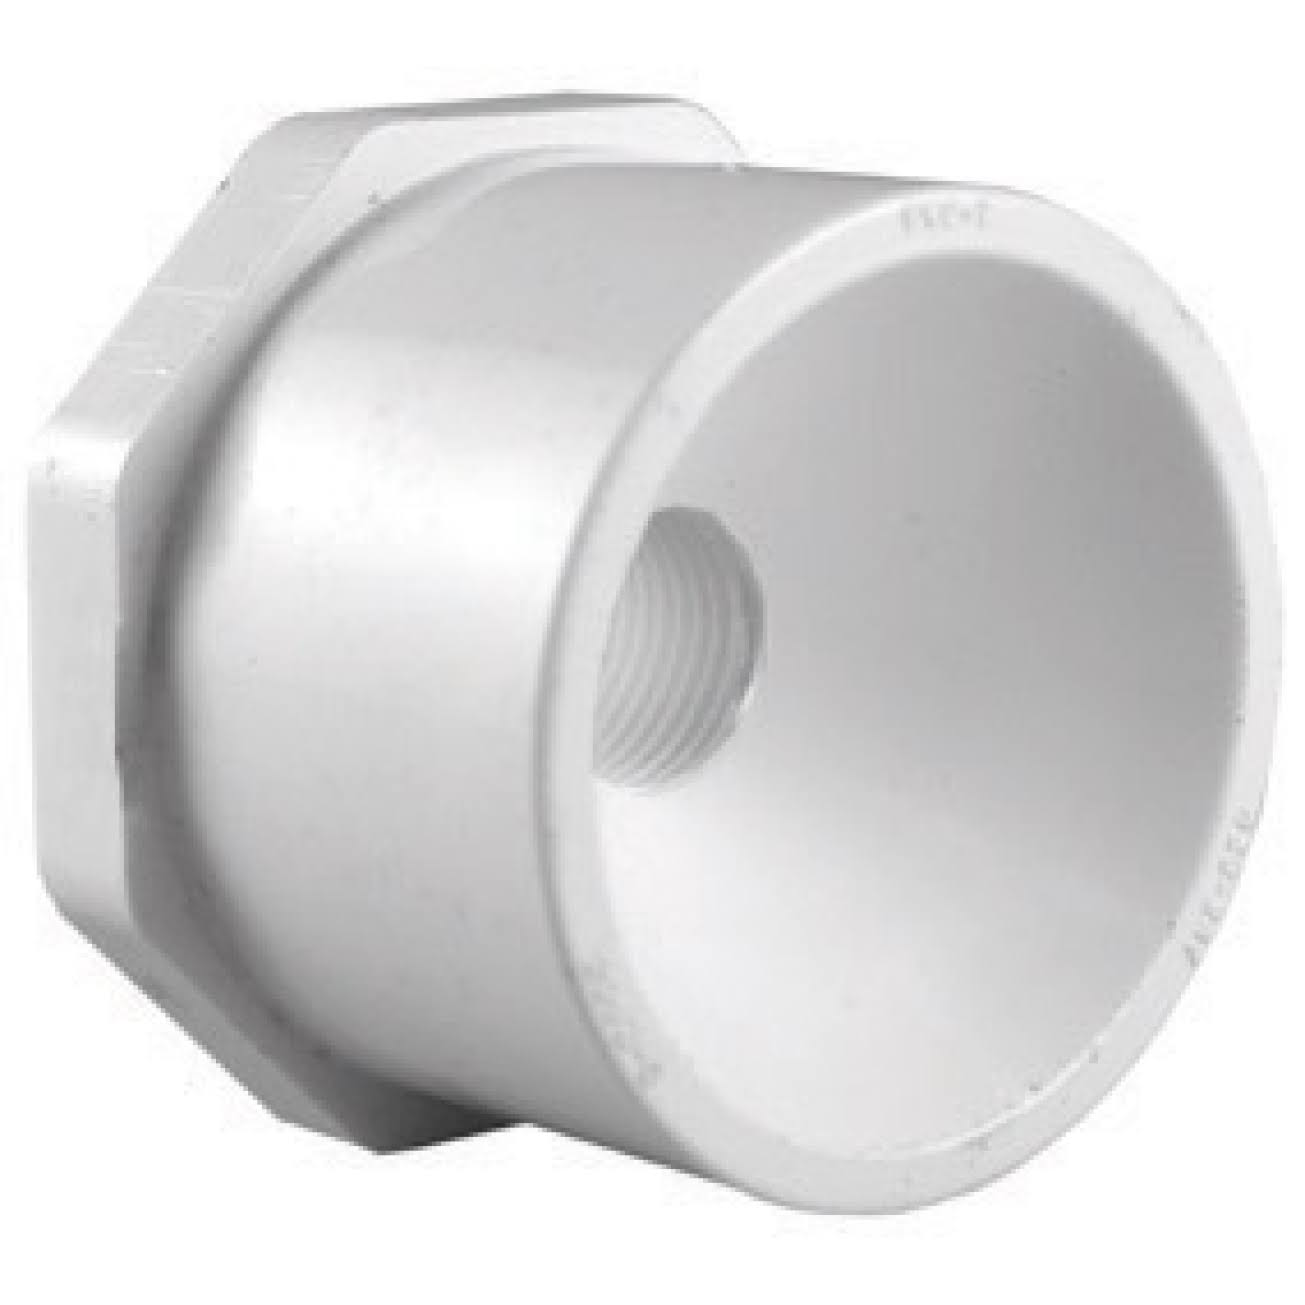 "Charlotte Pipe PVC Schedule 40 Reducer Bushing - 1-1/4"" x 3/4"""